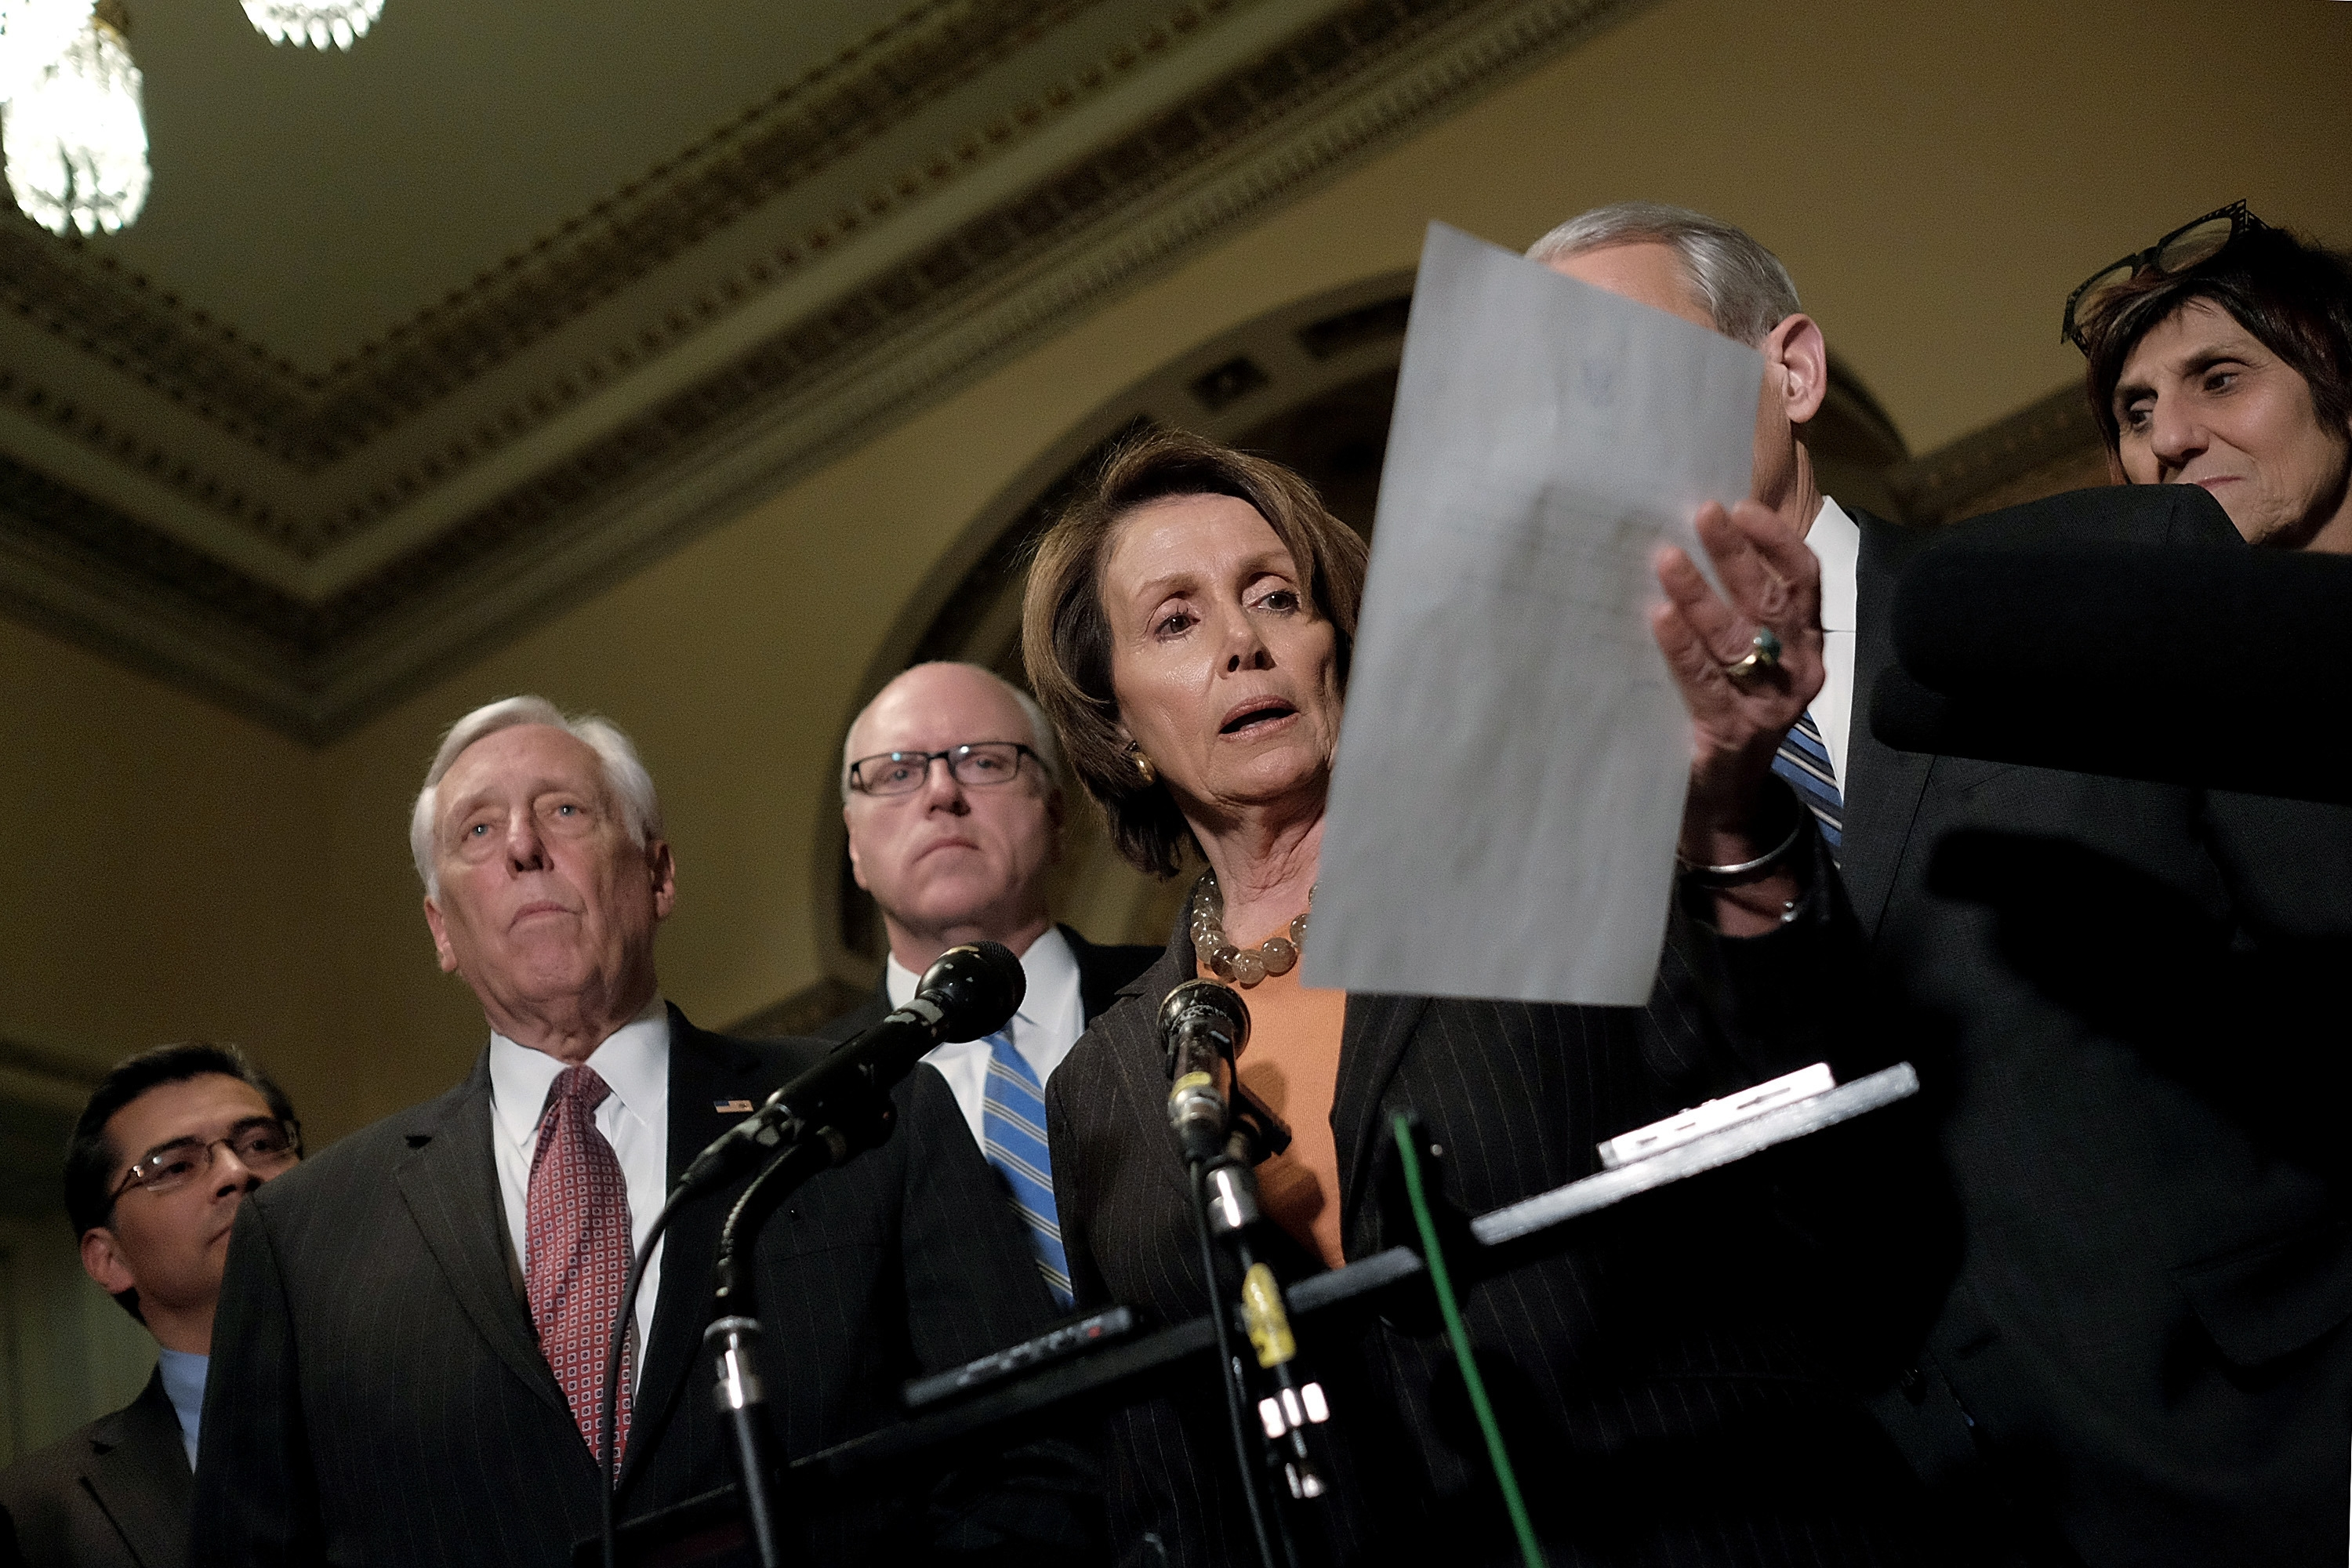 WASHINGTON, DC - FEBRUARY 27: House Minority Leader Rep. Nancy Pelosi (D-CA), at center, reads a letter she sent to colleagues in congress, urging support for a DHS stopgap funding bill, during a news conference with Democratic leaders including, from left, Rep. Xavier Becerra (D-CA), Rep. Steny Hoyer (D-MD), Rep. Joseph Crowley (D-NY) and Rep. Rosa DeLauro (D-CT) at the U.S. Capitol on February 27, 2015 in Washington, DC. The House failed earlier today to pass a 20-day stopgap bill to fund the Department of Homeland Security, after previous Senate and House versions of DHS funding bills were rejected by the other chamber, threatening to shut down the deparment with no clear resolution. (Photo by T.J. Kirkpatrick/Getty Images)